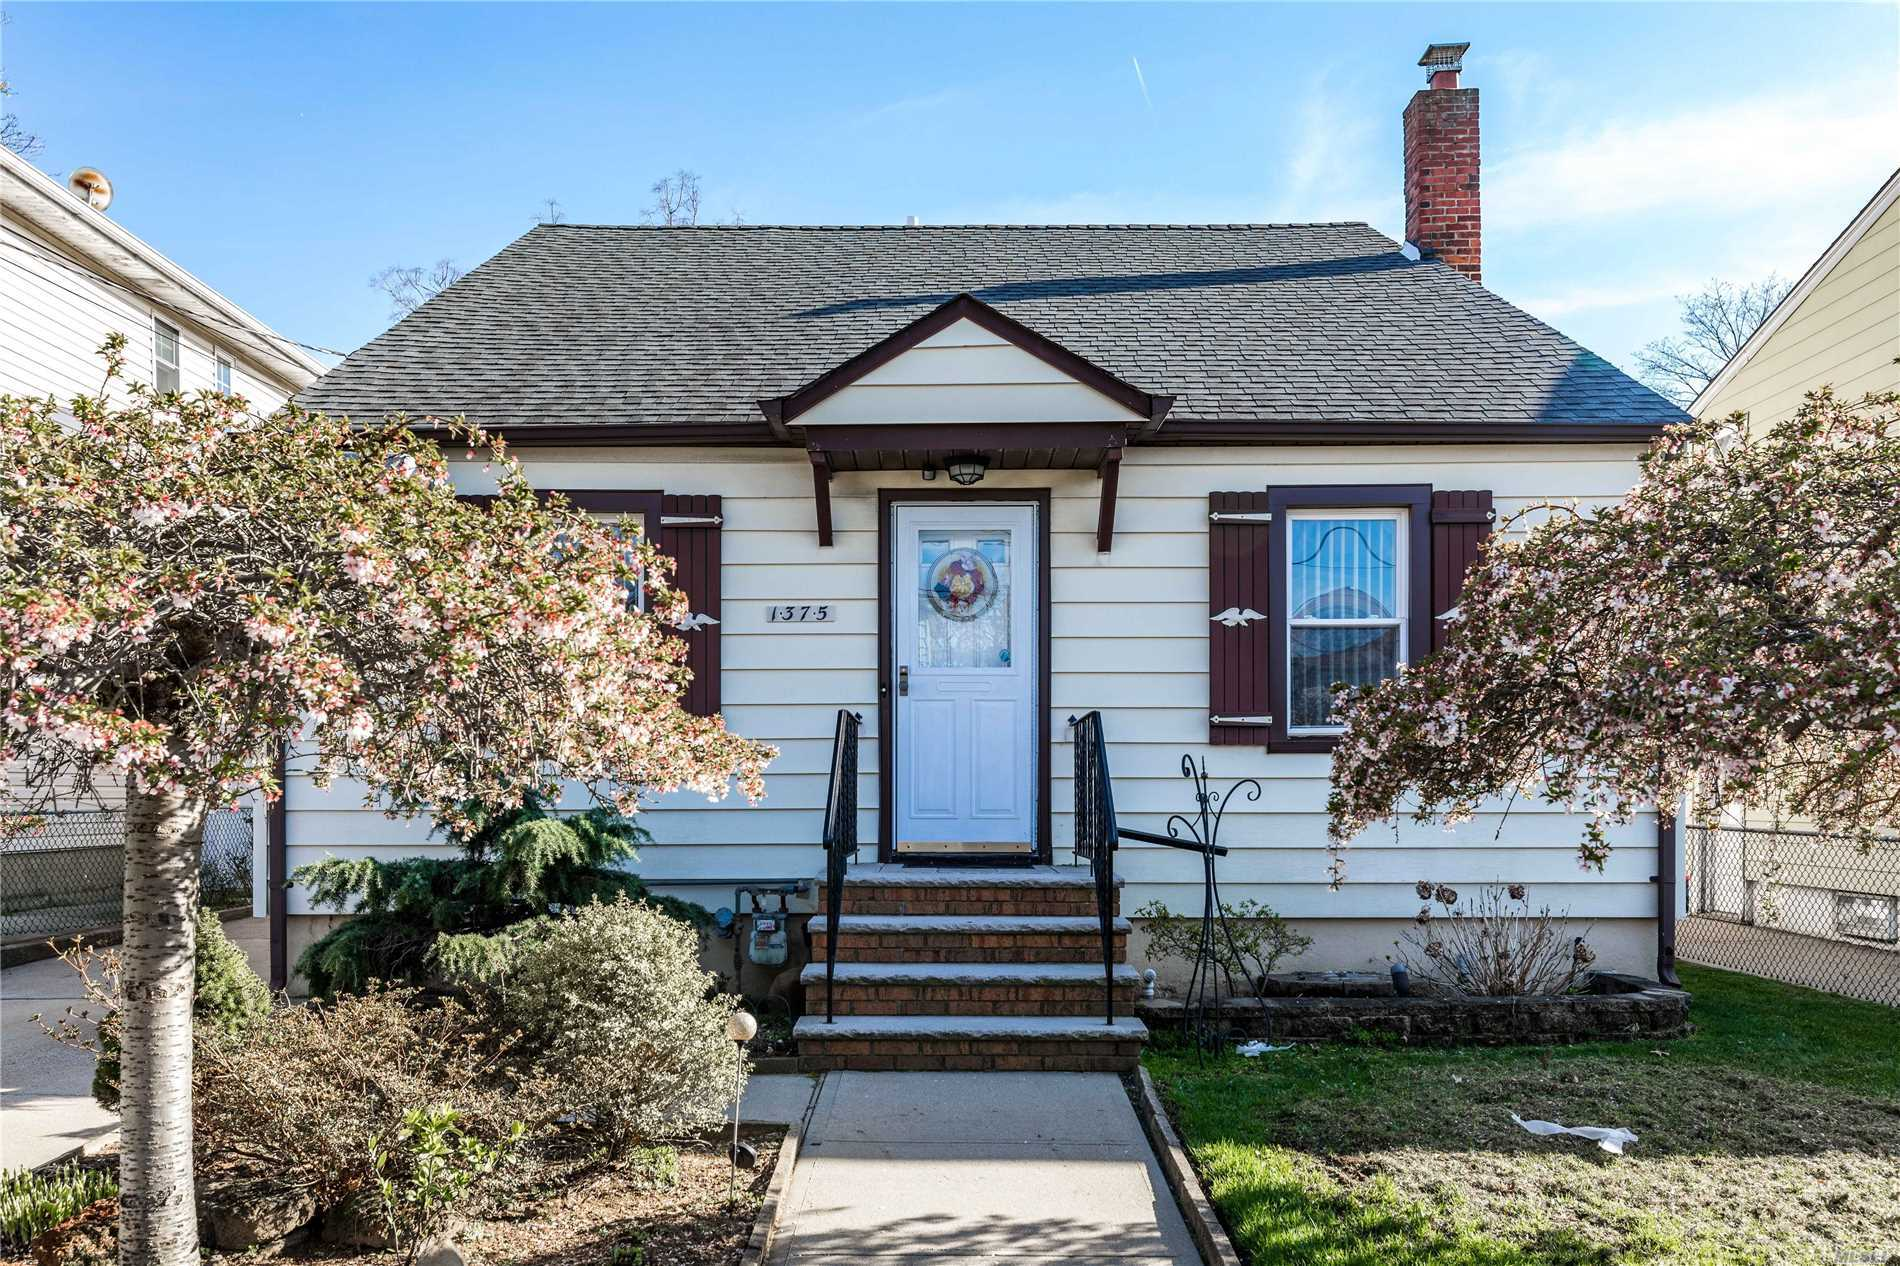 Elmont Home.....4 Bedroom 2 Full Bath EIK Dining Room Living Room Full Finished Basement with Outside Entrance Boiler and Roof only 4 years old Gas Cooking In Ground Sprinklers PVC Fence Garage Half Dormer Cape Cod Home!